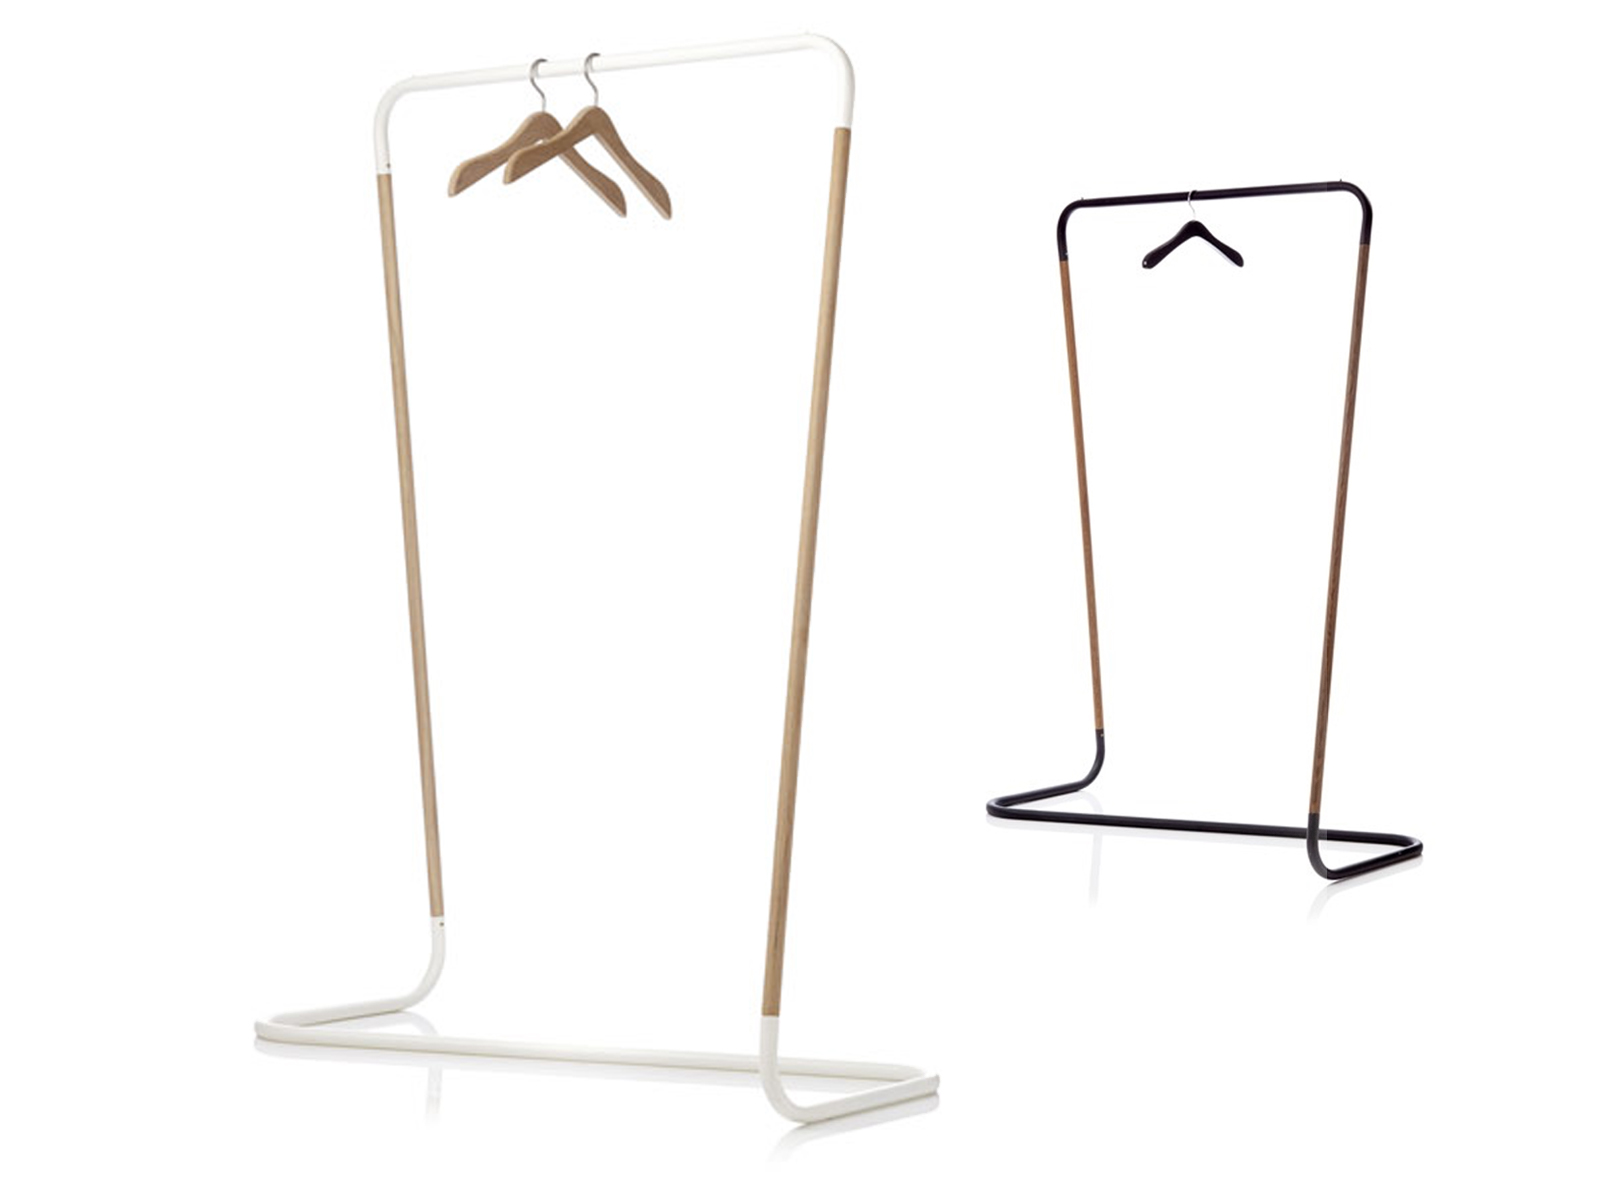 Applicata Tube Coat Rack